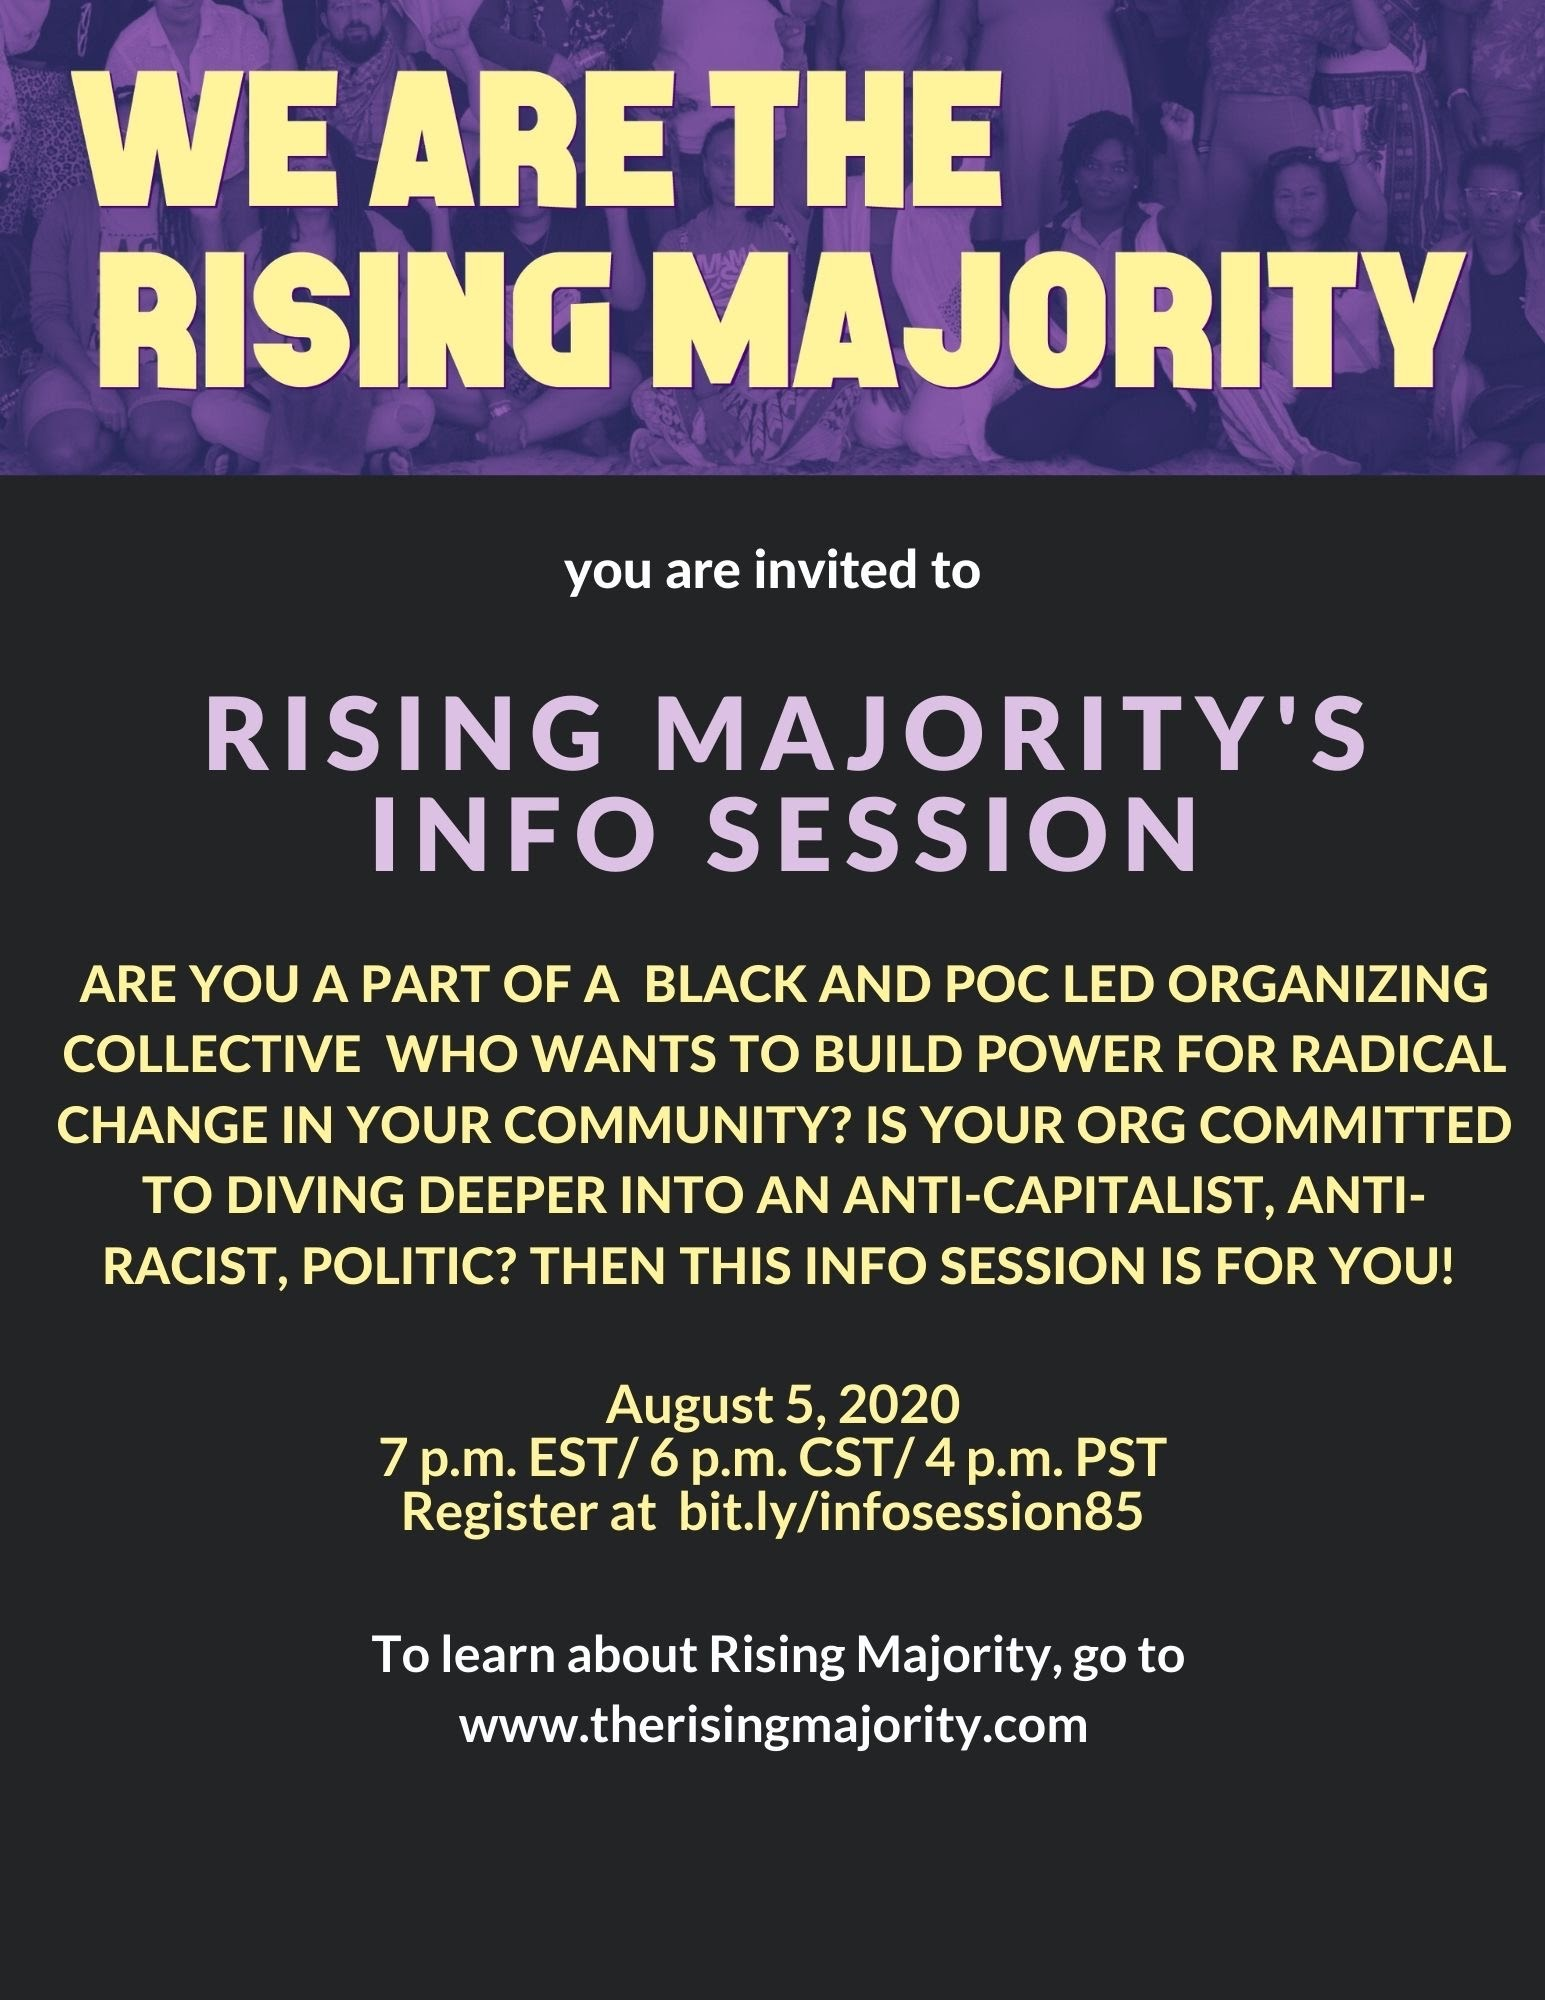 Rising Majority's Info Session event image